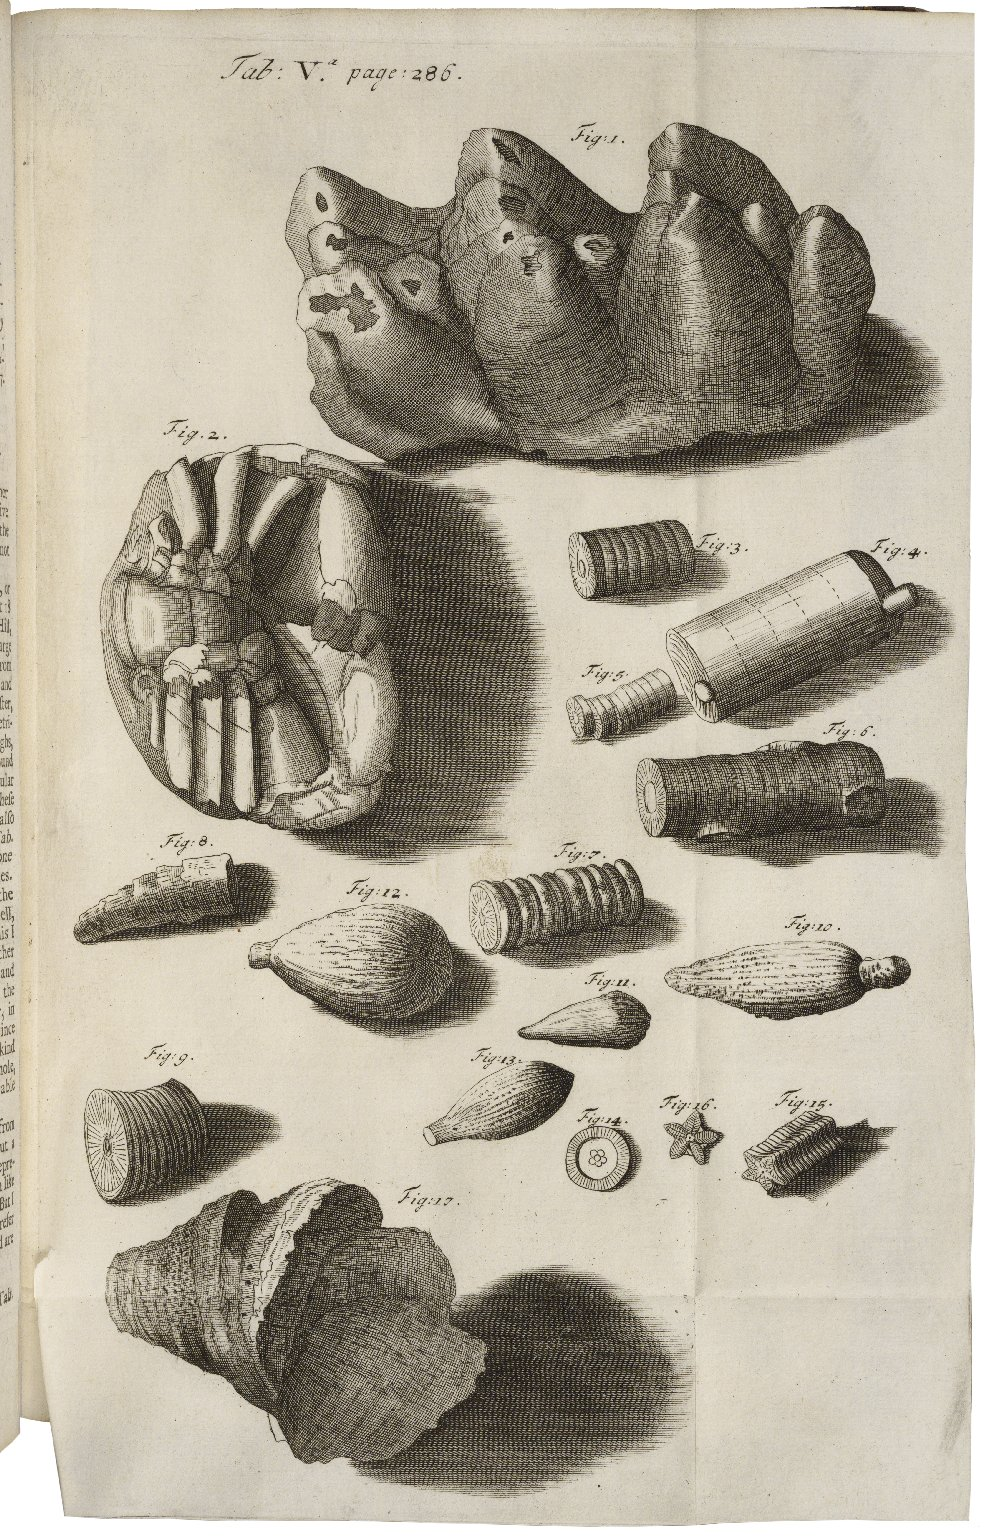 The posthumous works of Robert Hooke, ... containing his Cutlerian lectures, and other discourses, read at the meetings of the illustrious Royal Society. ... Illustrated with sculptures. To these discourses is prefixt the author's life, ... Publish'd by Richard Waller, ...